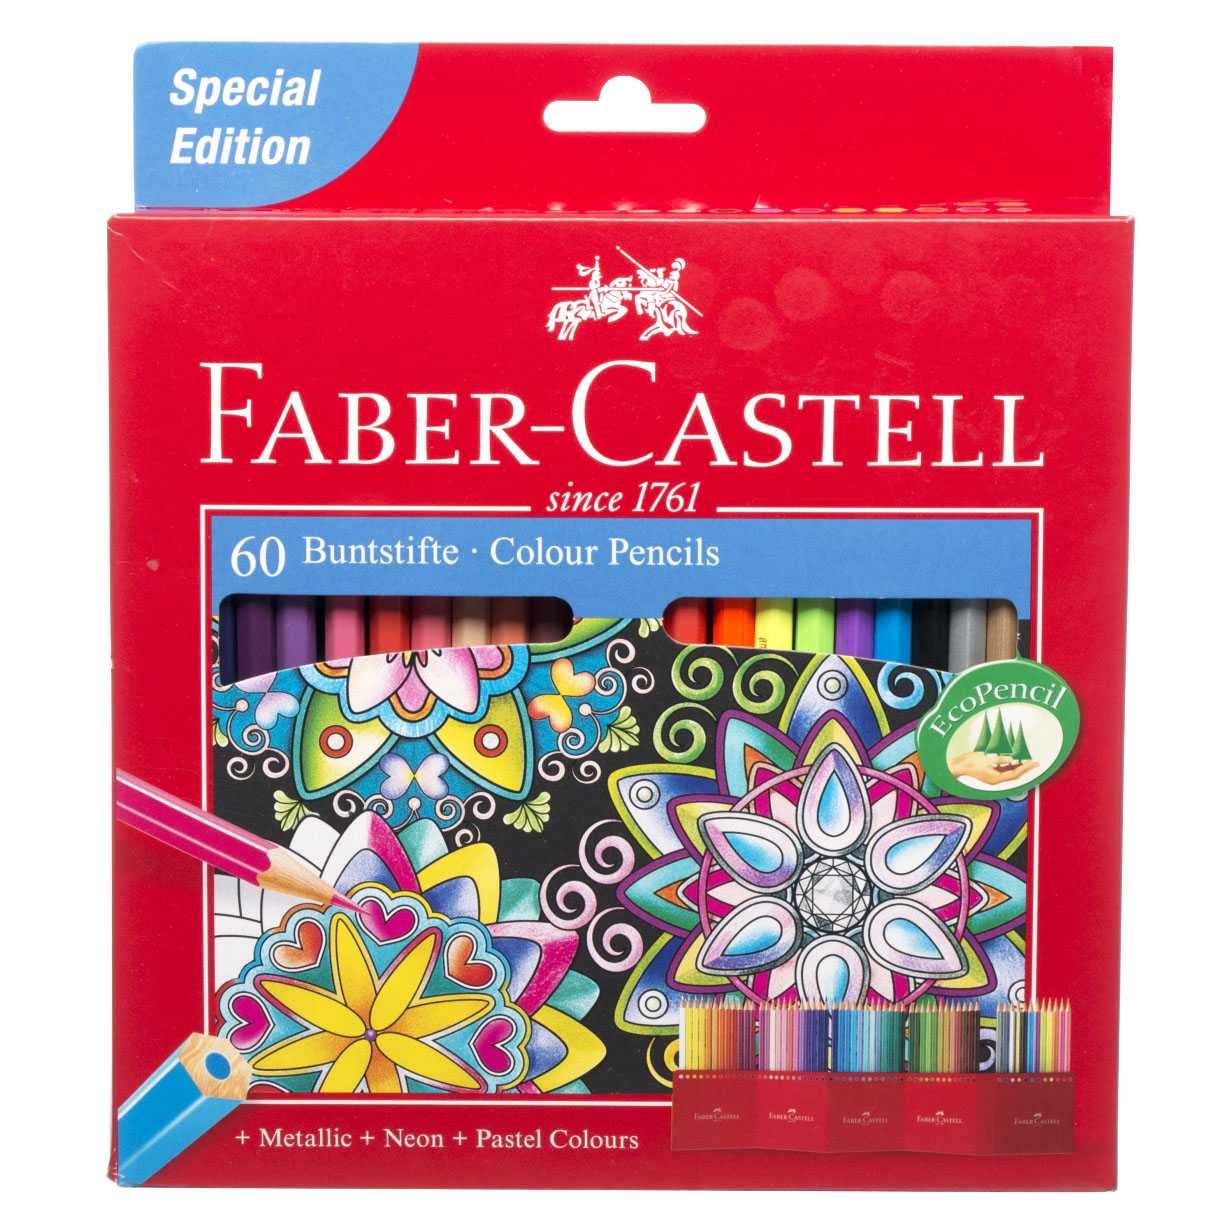 Coloring book for adults ebay - Coloring Books For Adults Ebay Faber Castell Assorted Colouring Pencils Metallic Neon And Pastel Eco